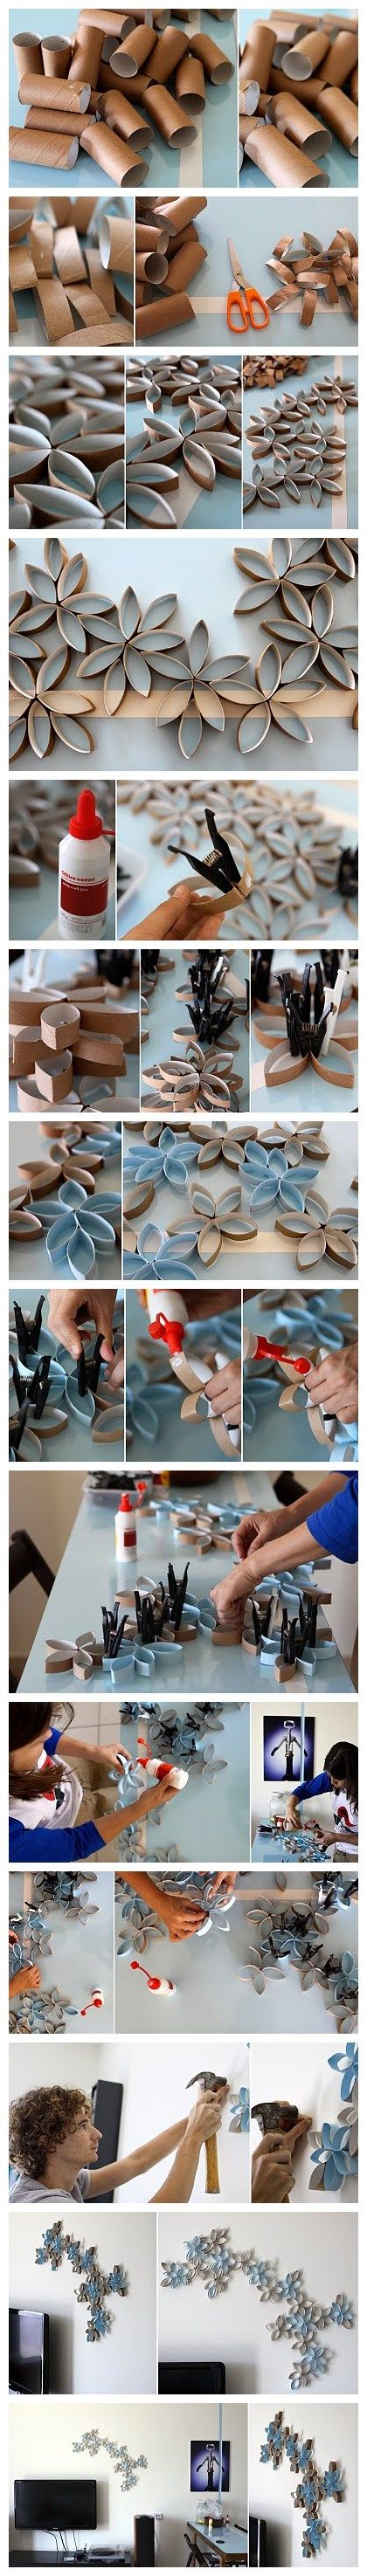 How to DIY toilet paper roll wall art project   DIY Tag